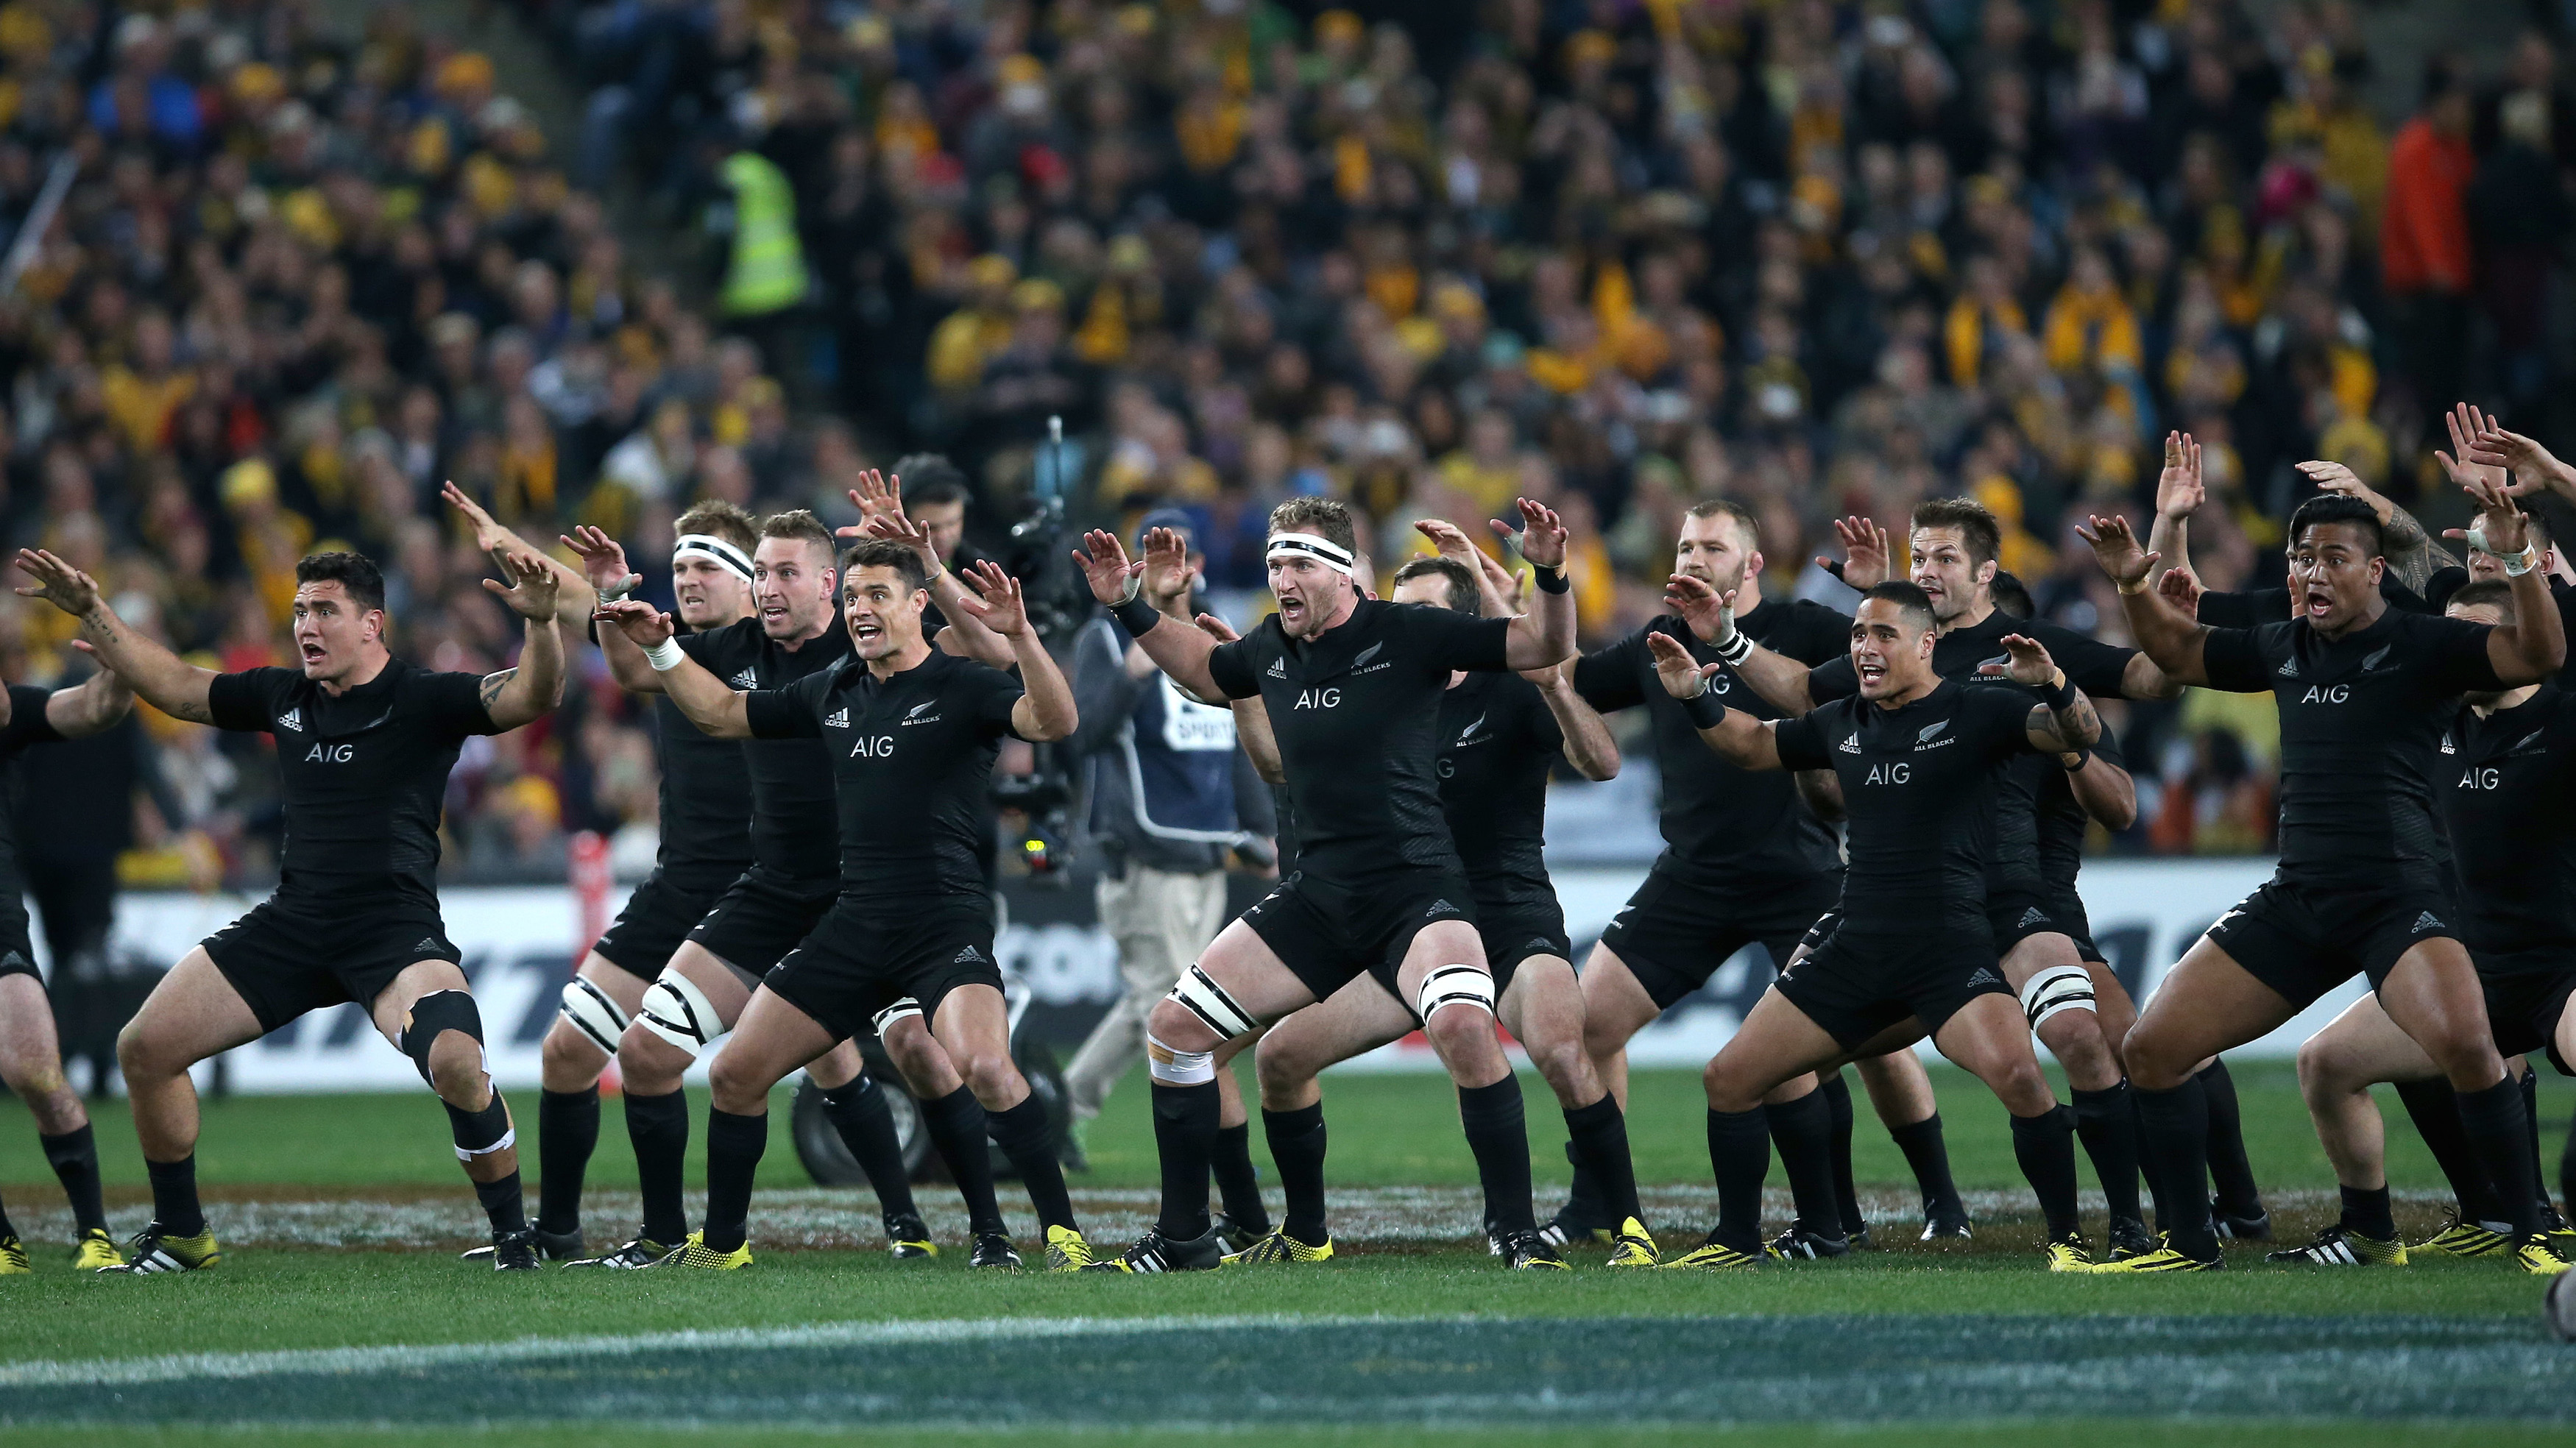 d578876aa46 New Zealand's rugby team pays homage to indigenous culture without  appropriating it